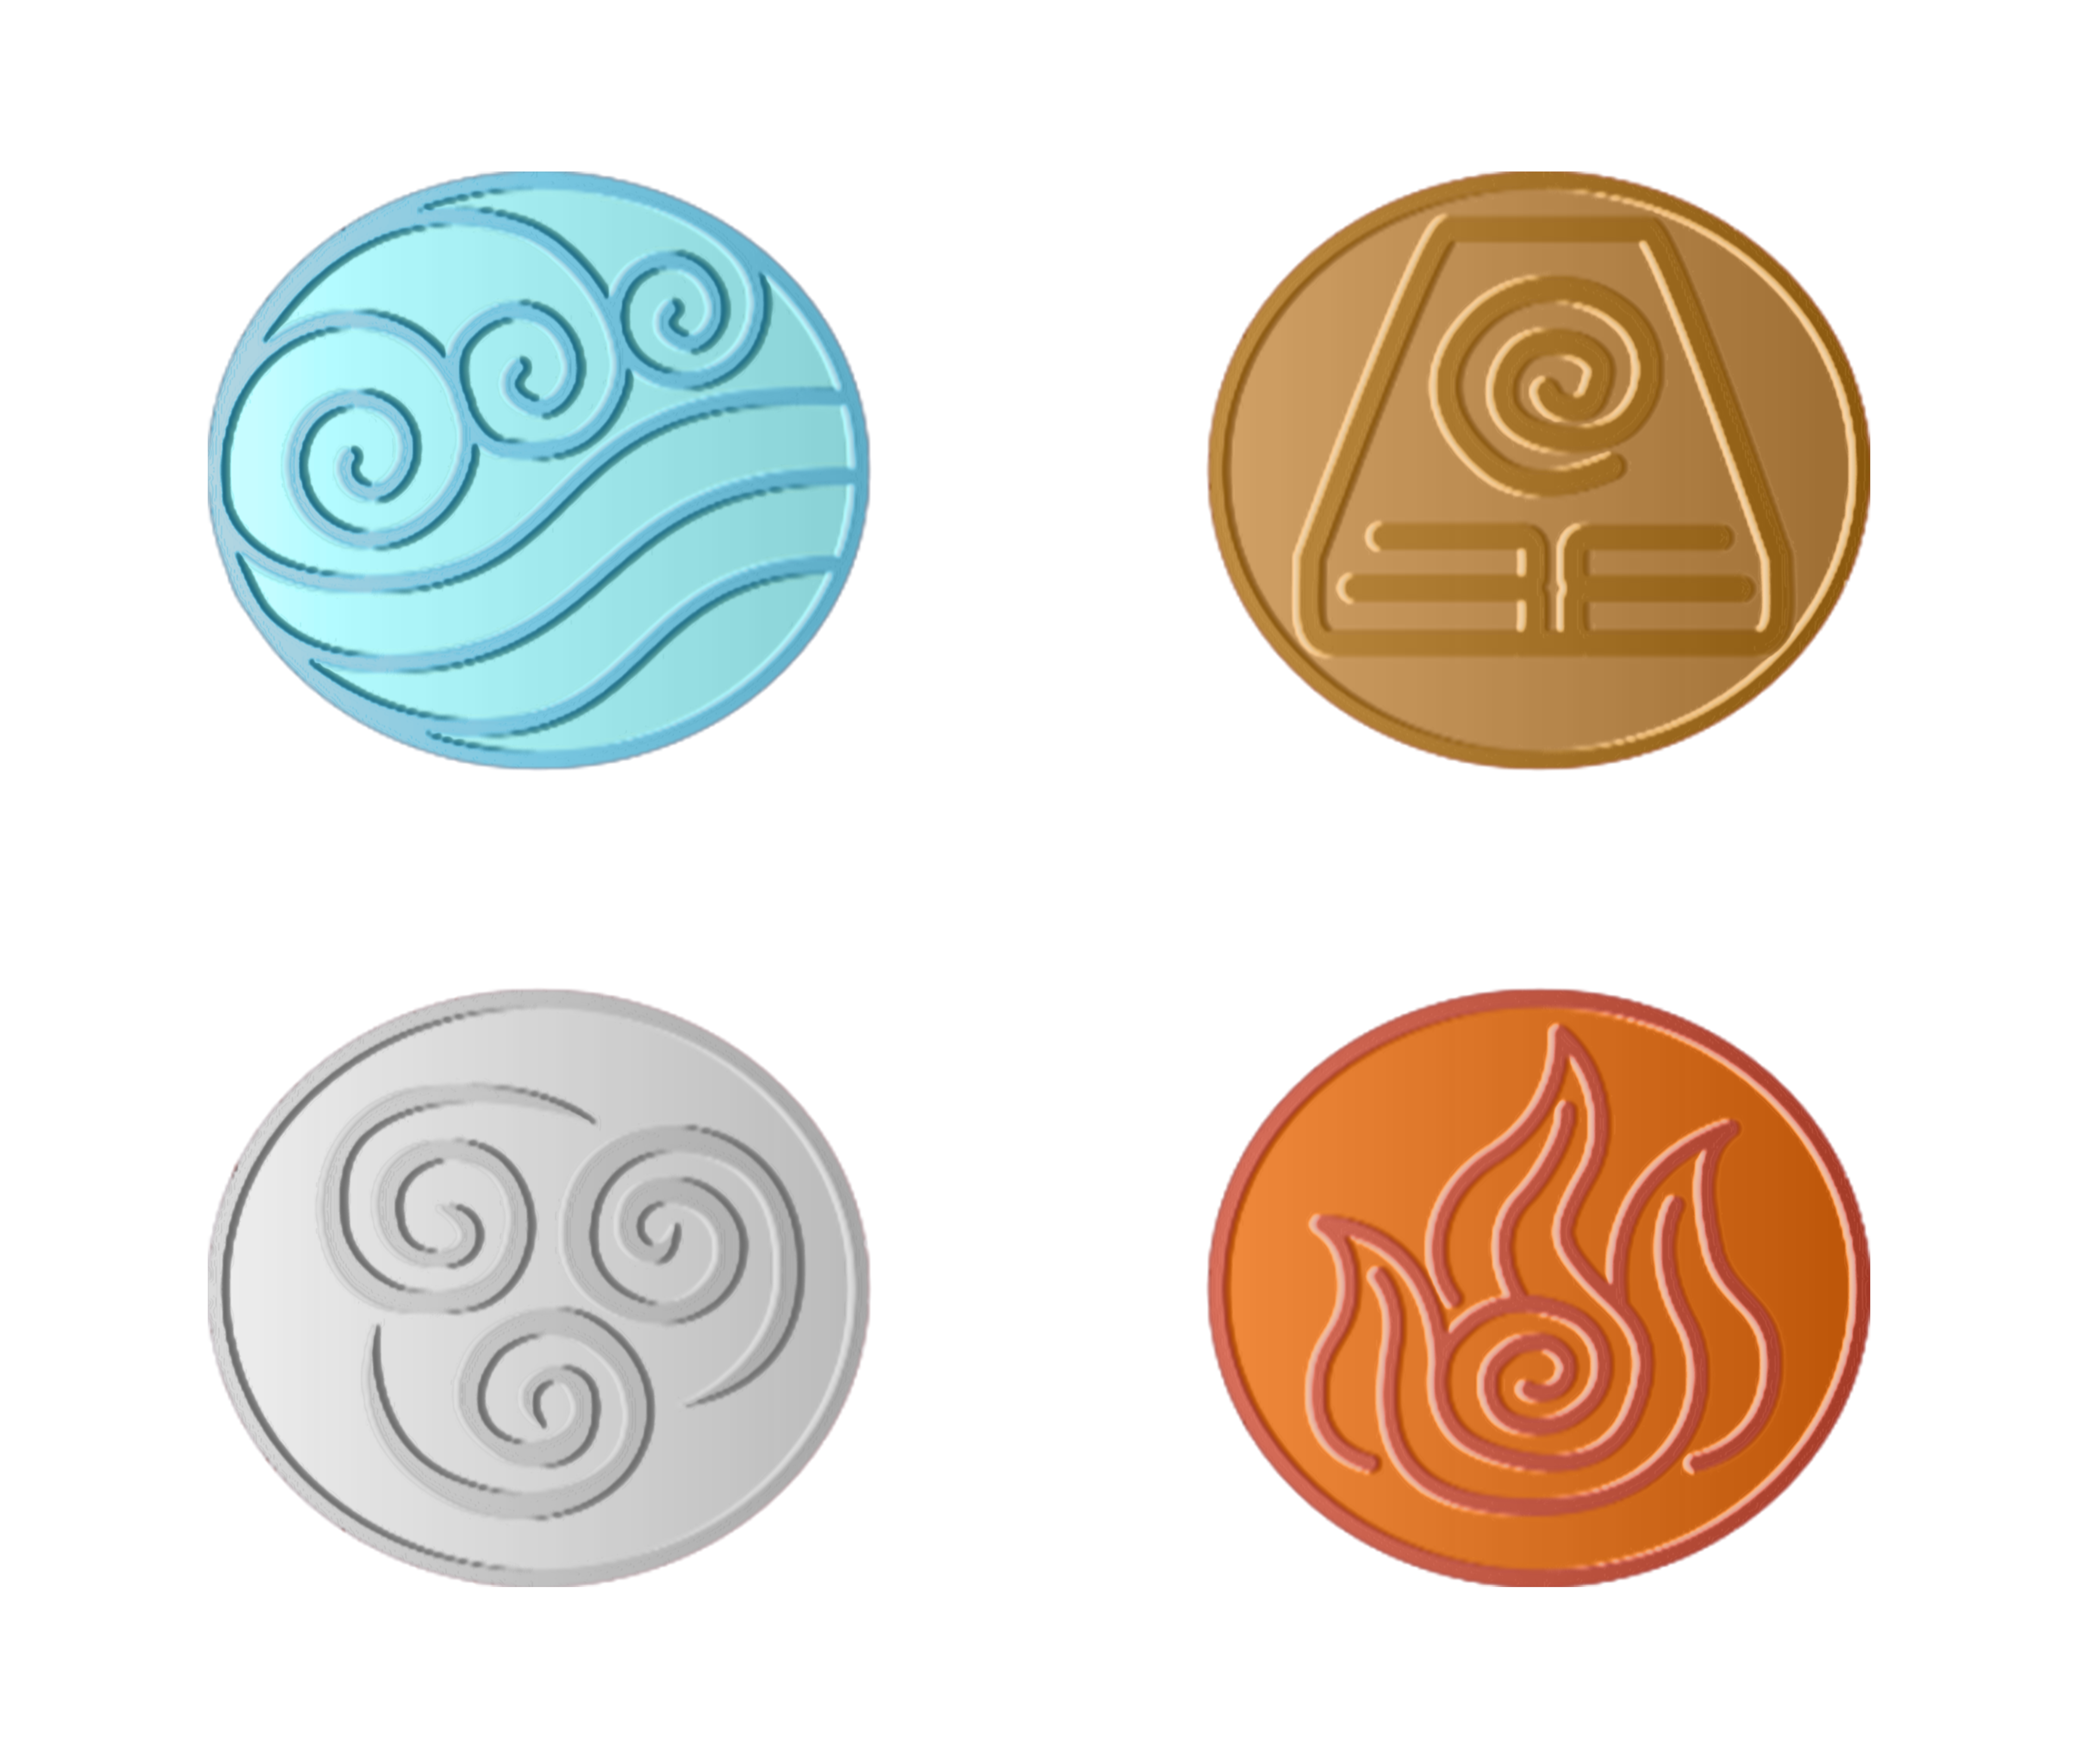 Avatar The Last Airbender Earth Fire Air Water Sticker By P47d47 Avatar The Last Airbender The Last Airbender Earth Air Fire Water